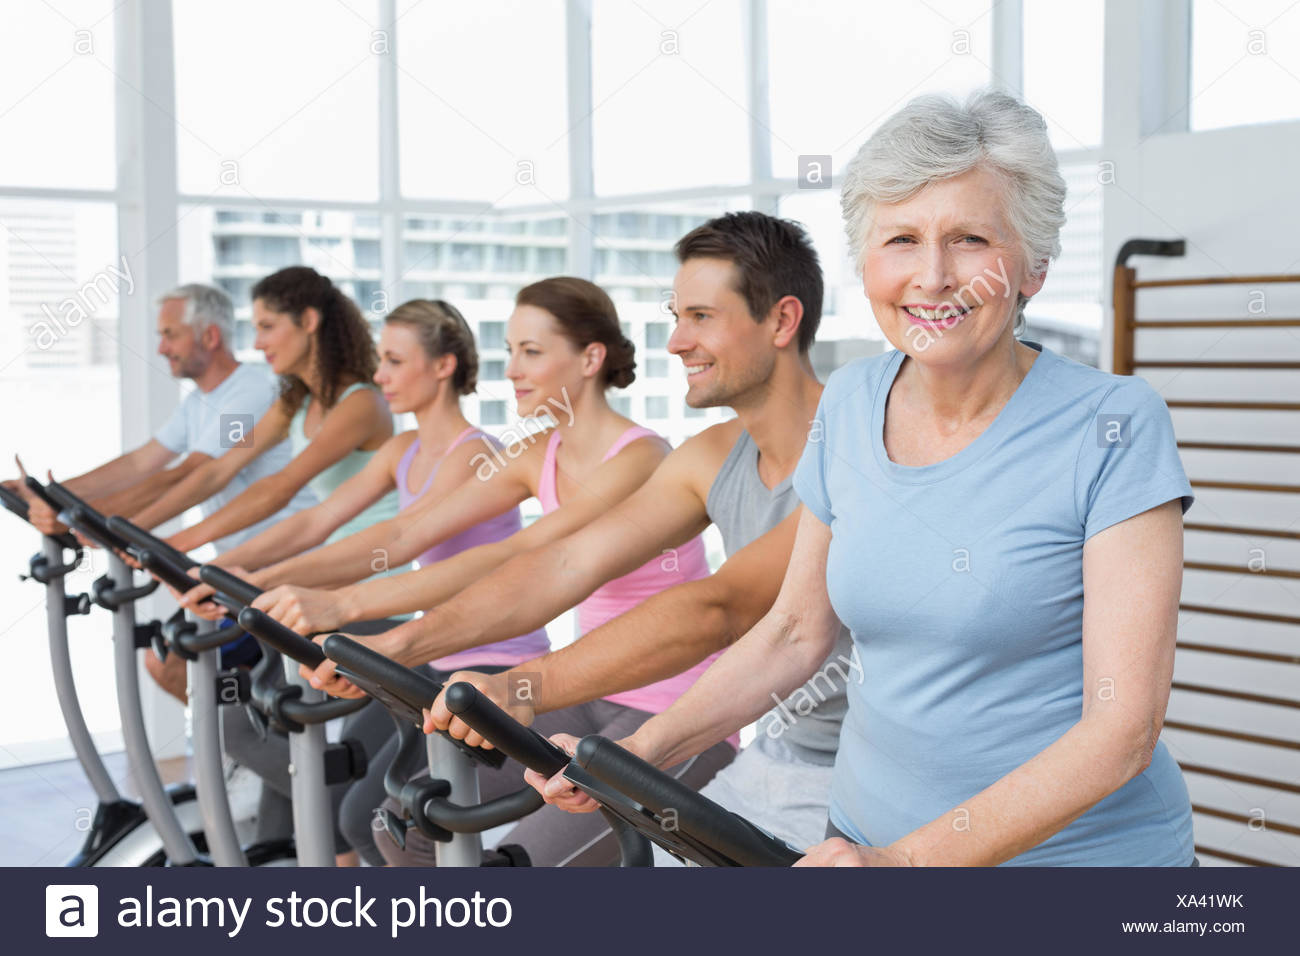 Happy people working out at spinning class Stock Photo